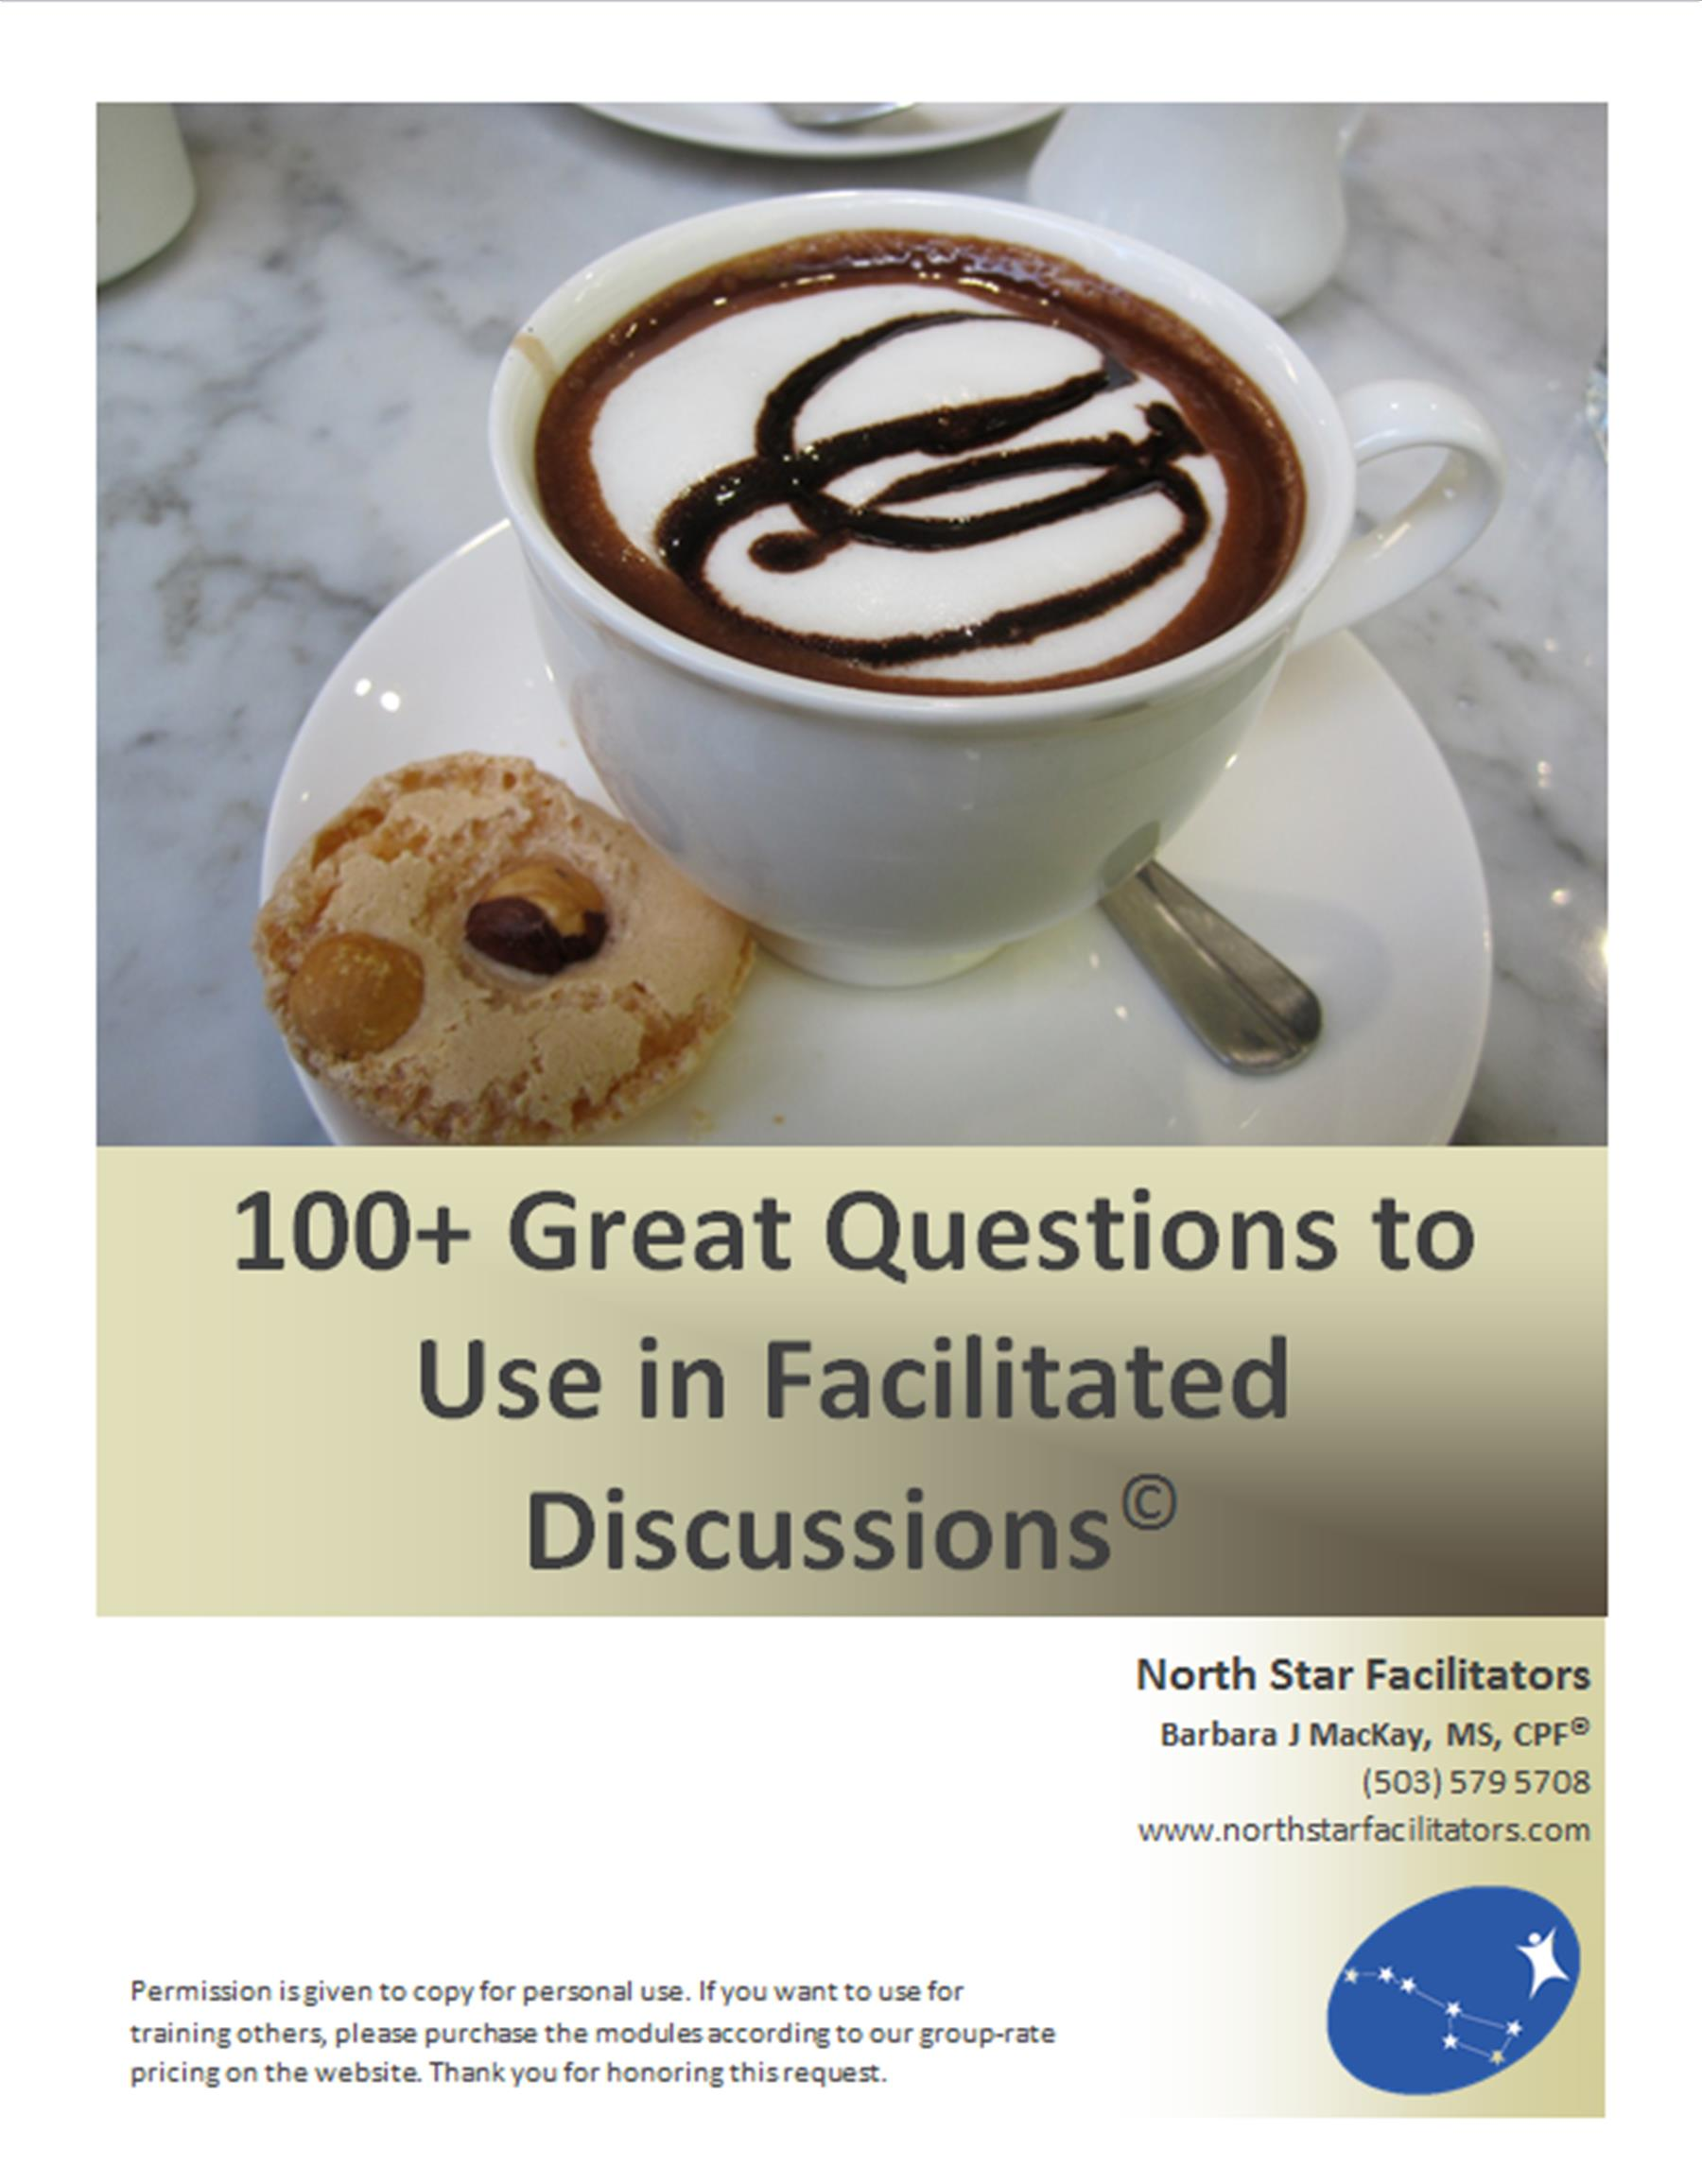 Need help in making more meaningful conversation or creating great facilitated group discussions?